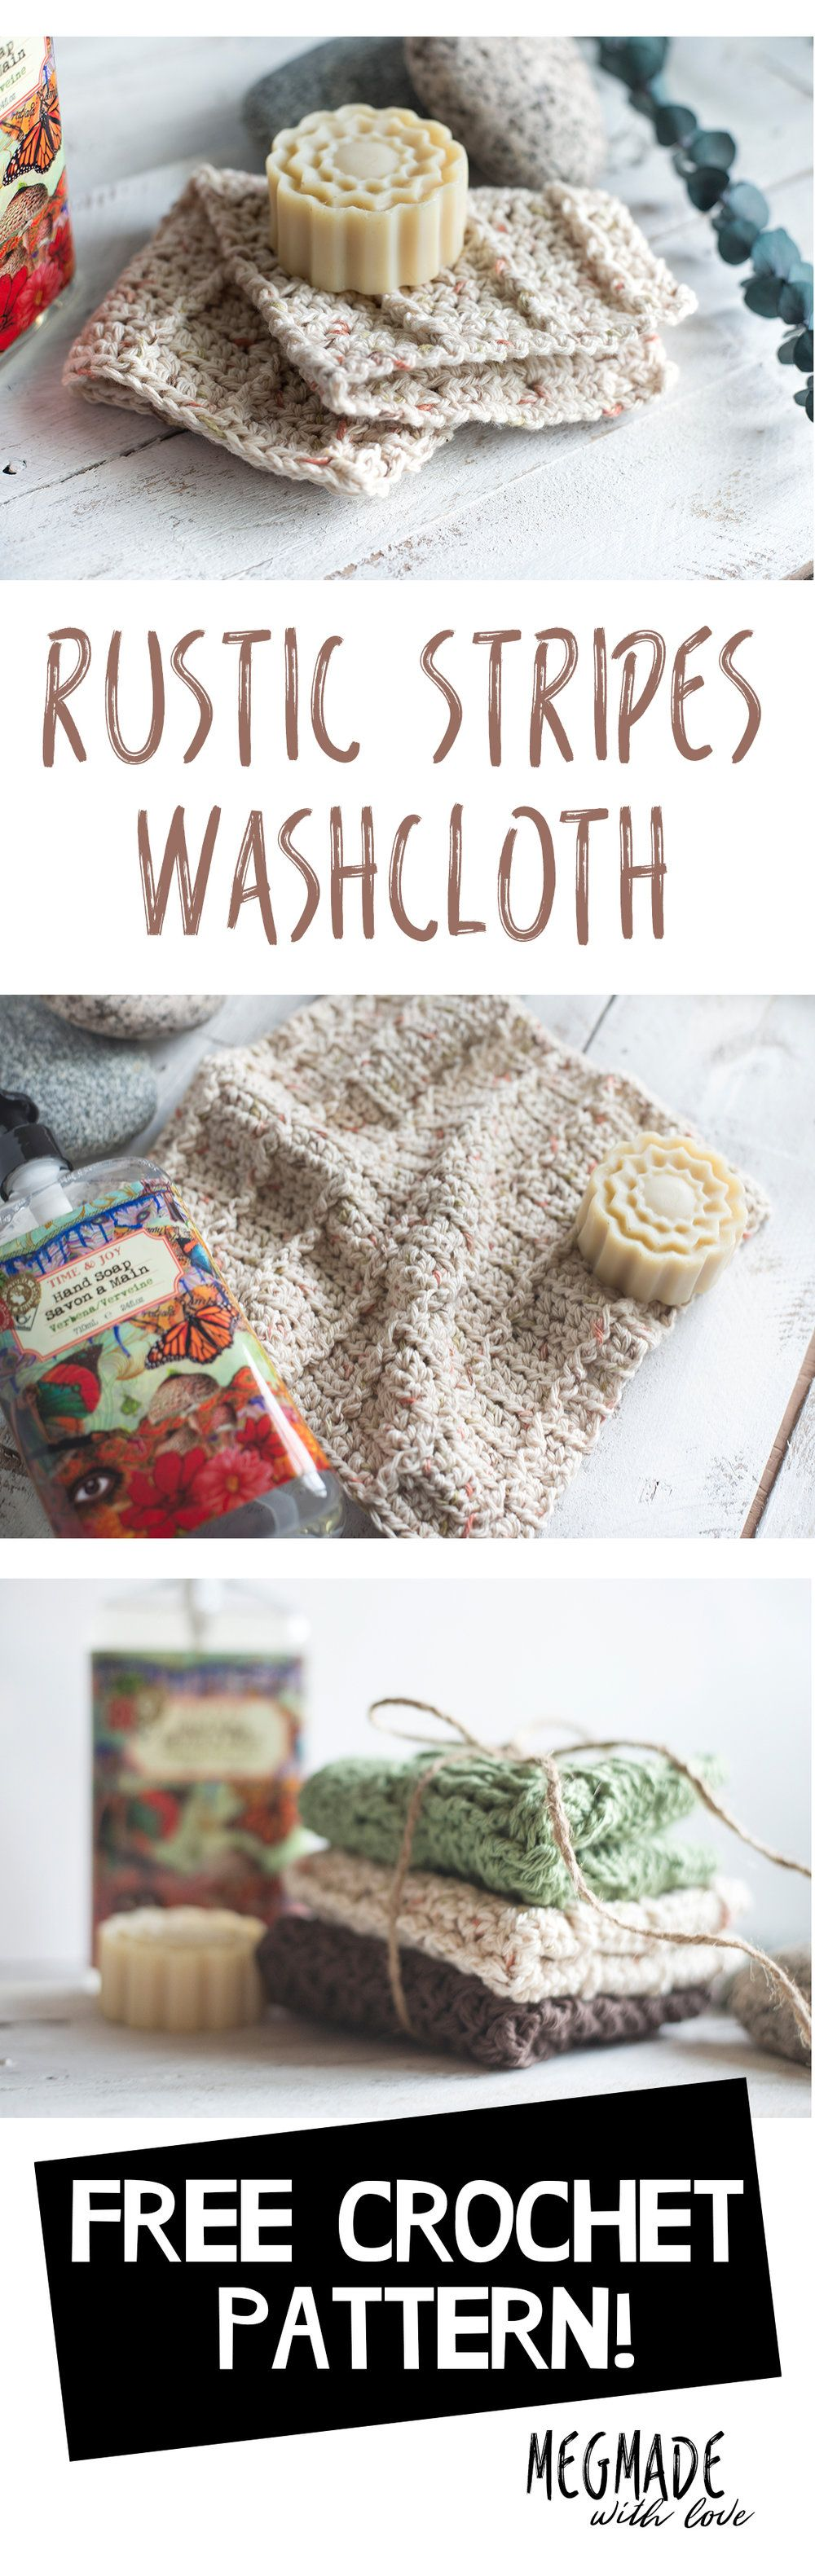 Crochet Rustic Stripes Washcloth Pattern | Tejido